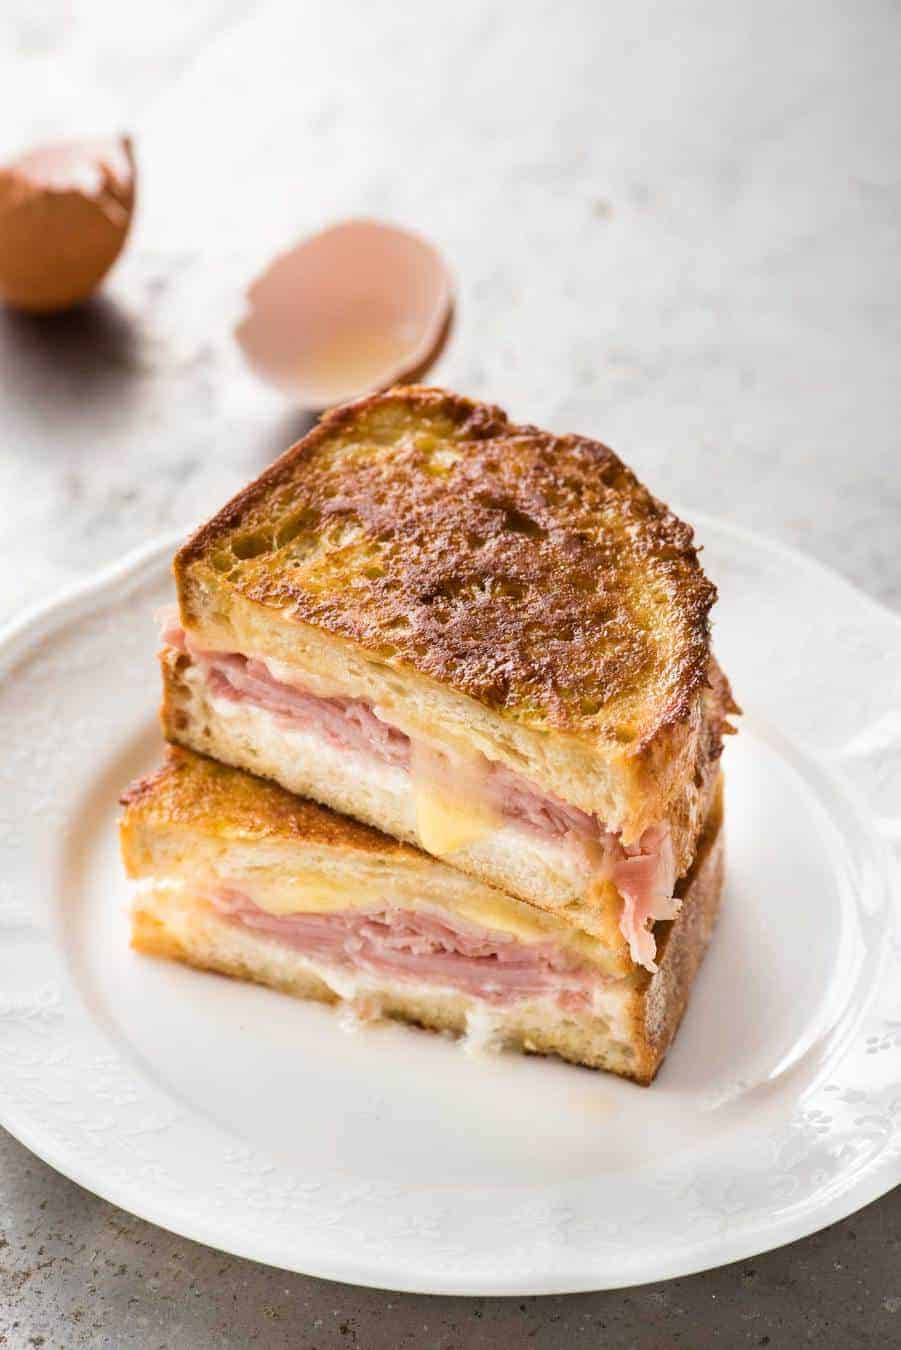 Monte Cristo Sandwich cut in half and stacked on each other on a small white plate, ready to be eaten.